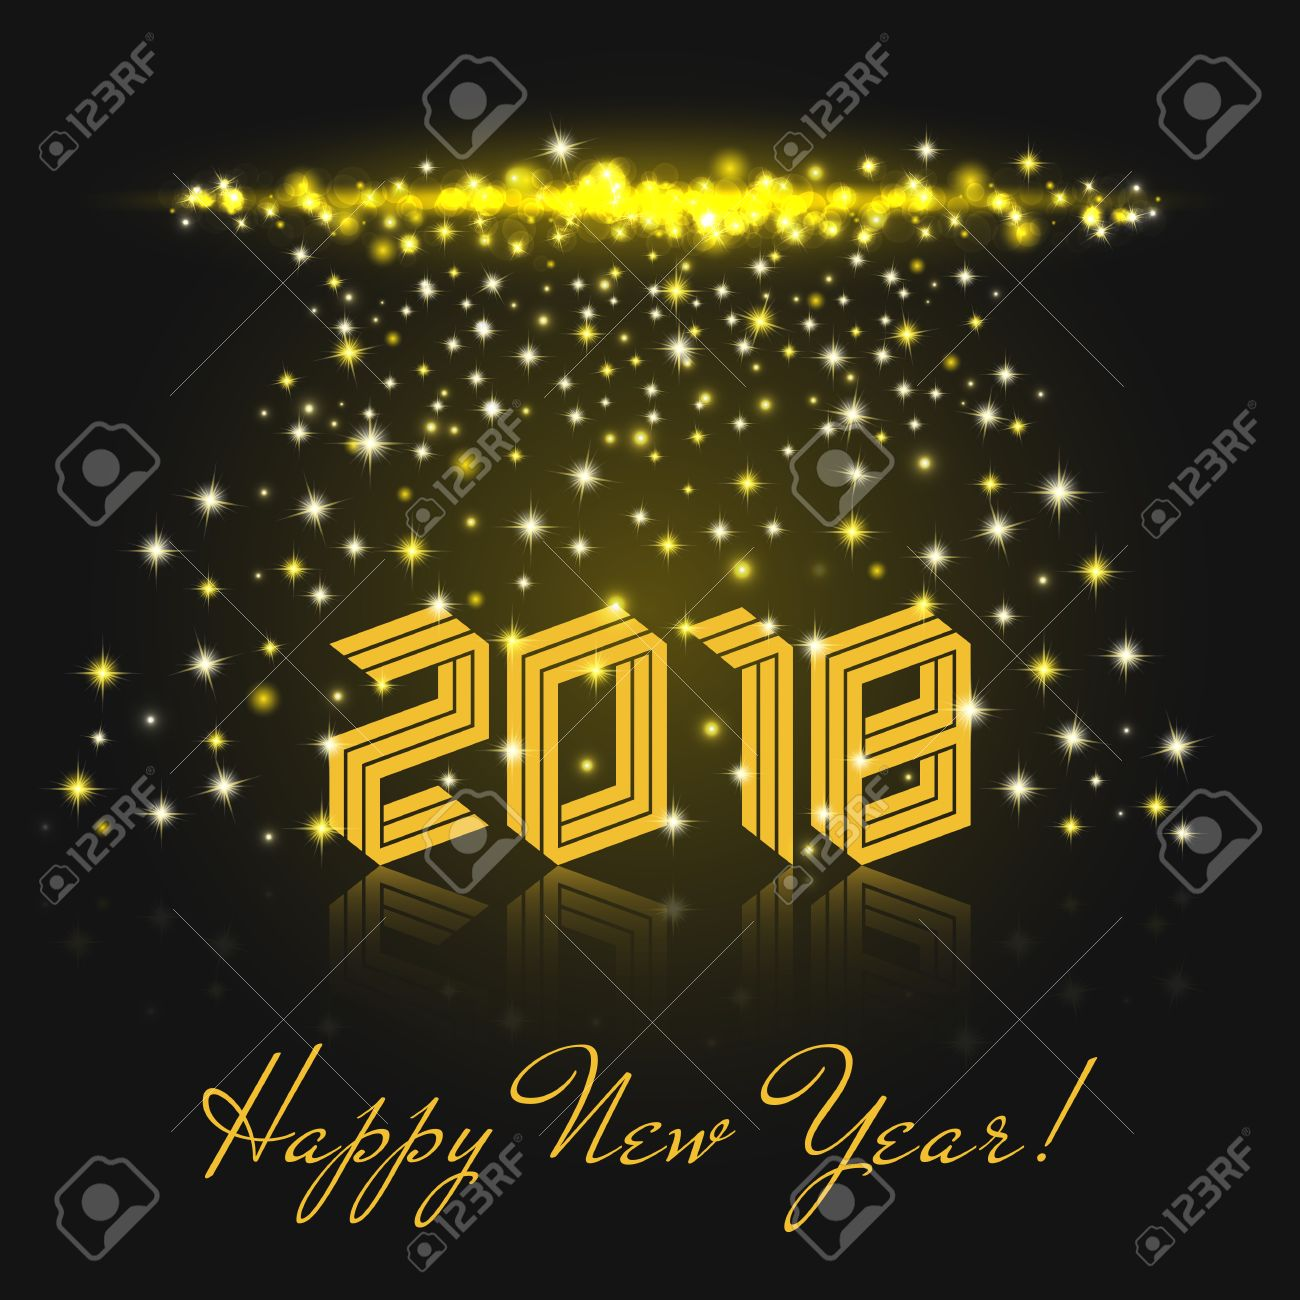 happy new year 2018 yellow isometric text winter holiday greeting card template vector illustration